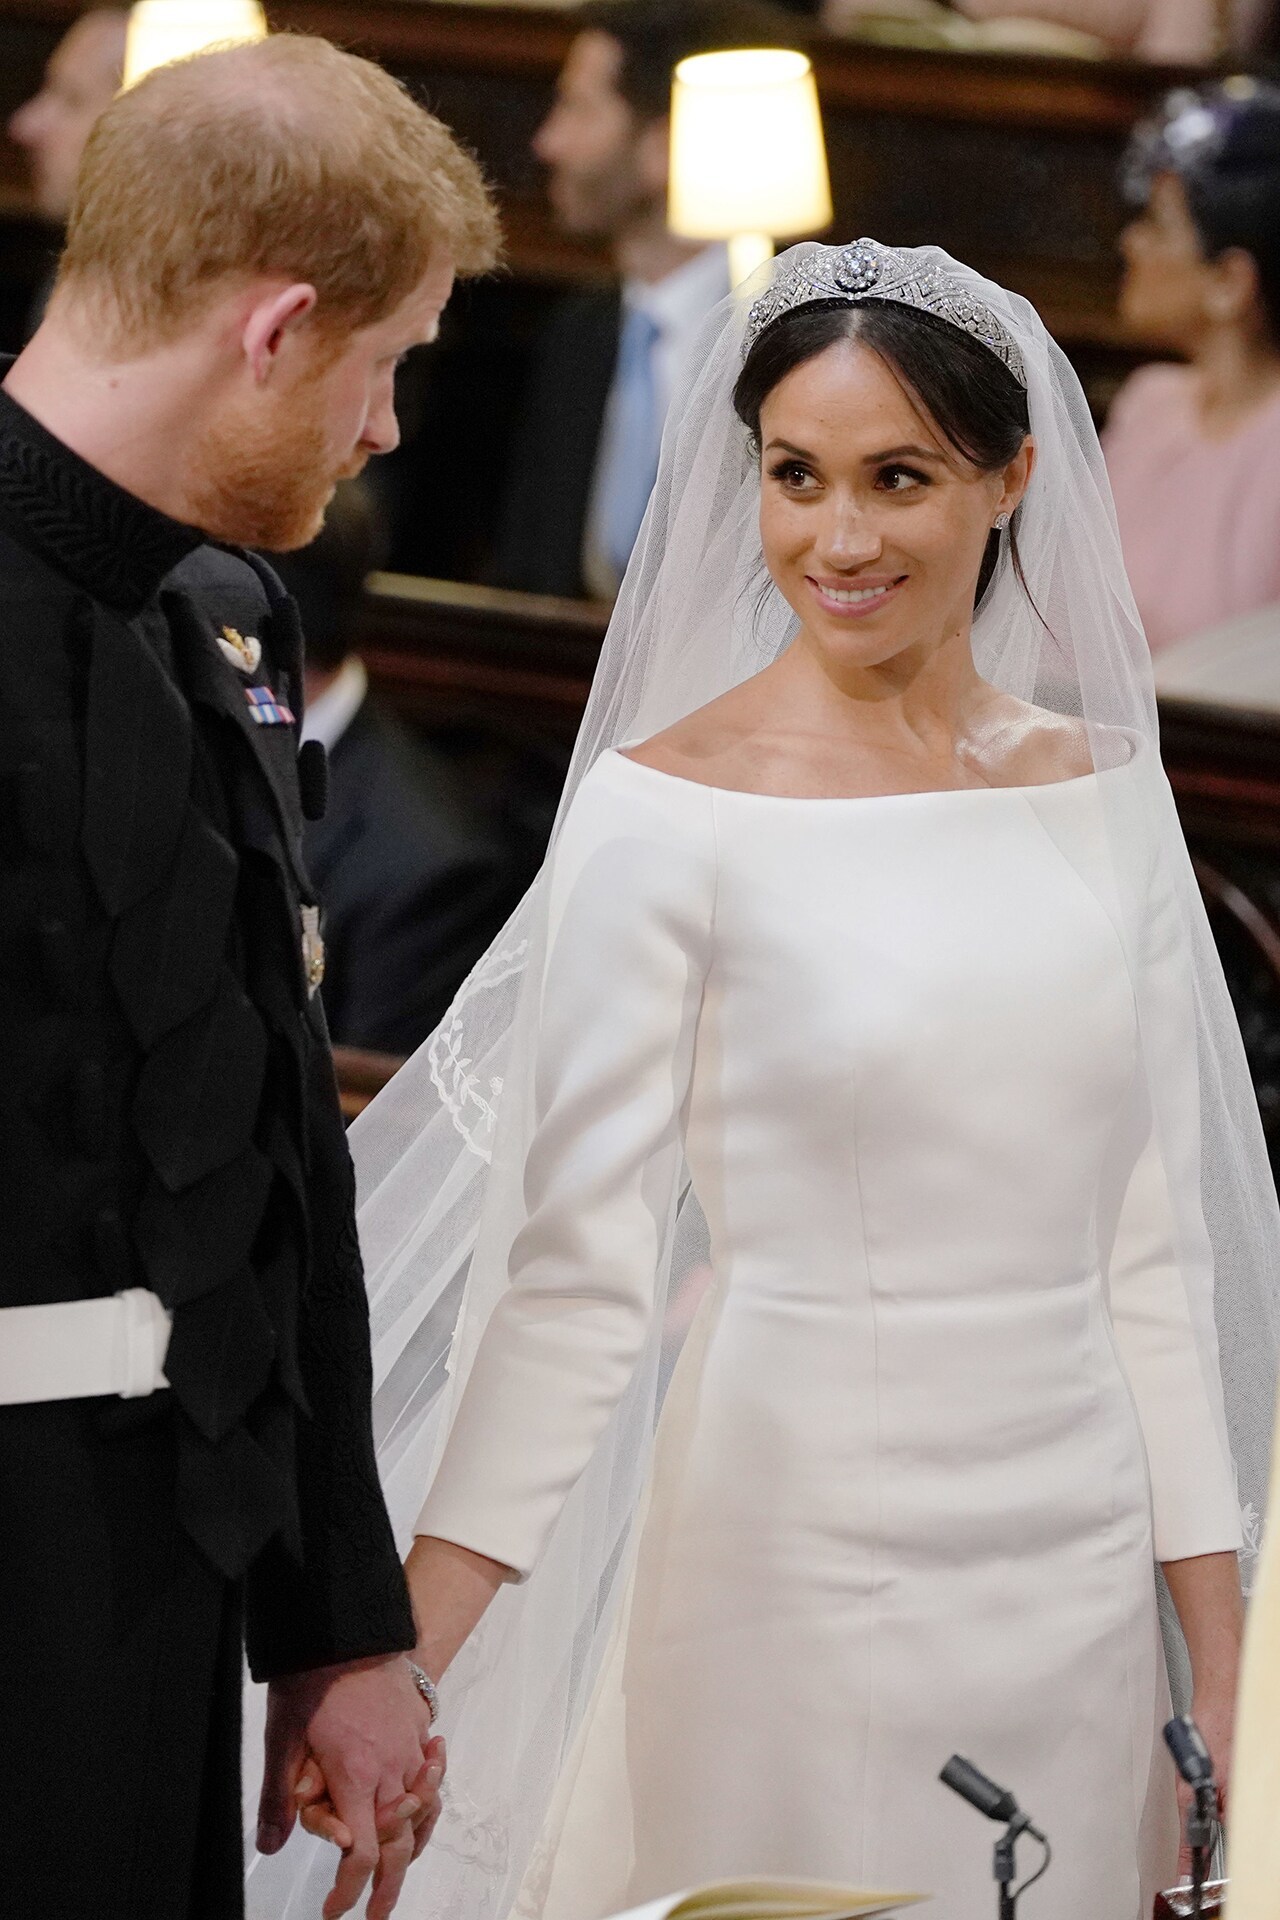 Crown jewels: all the jewellery Meghan Markle wore on her wedding day